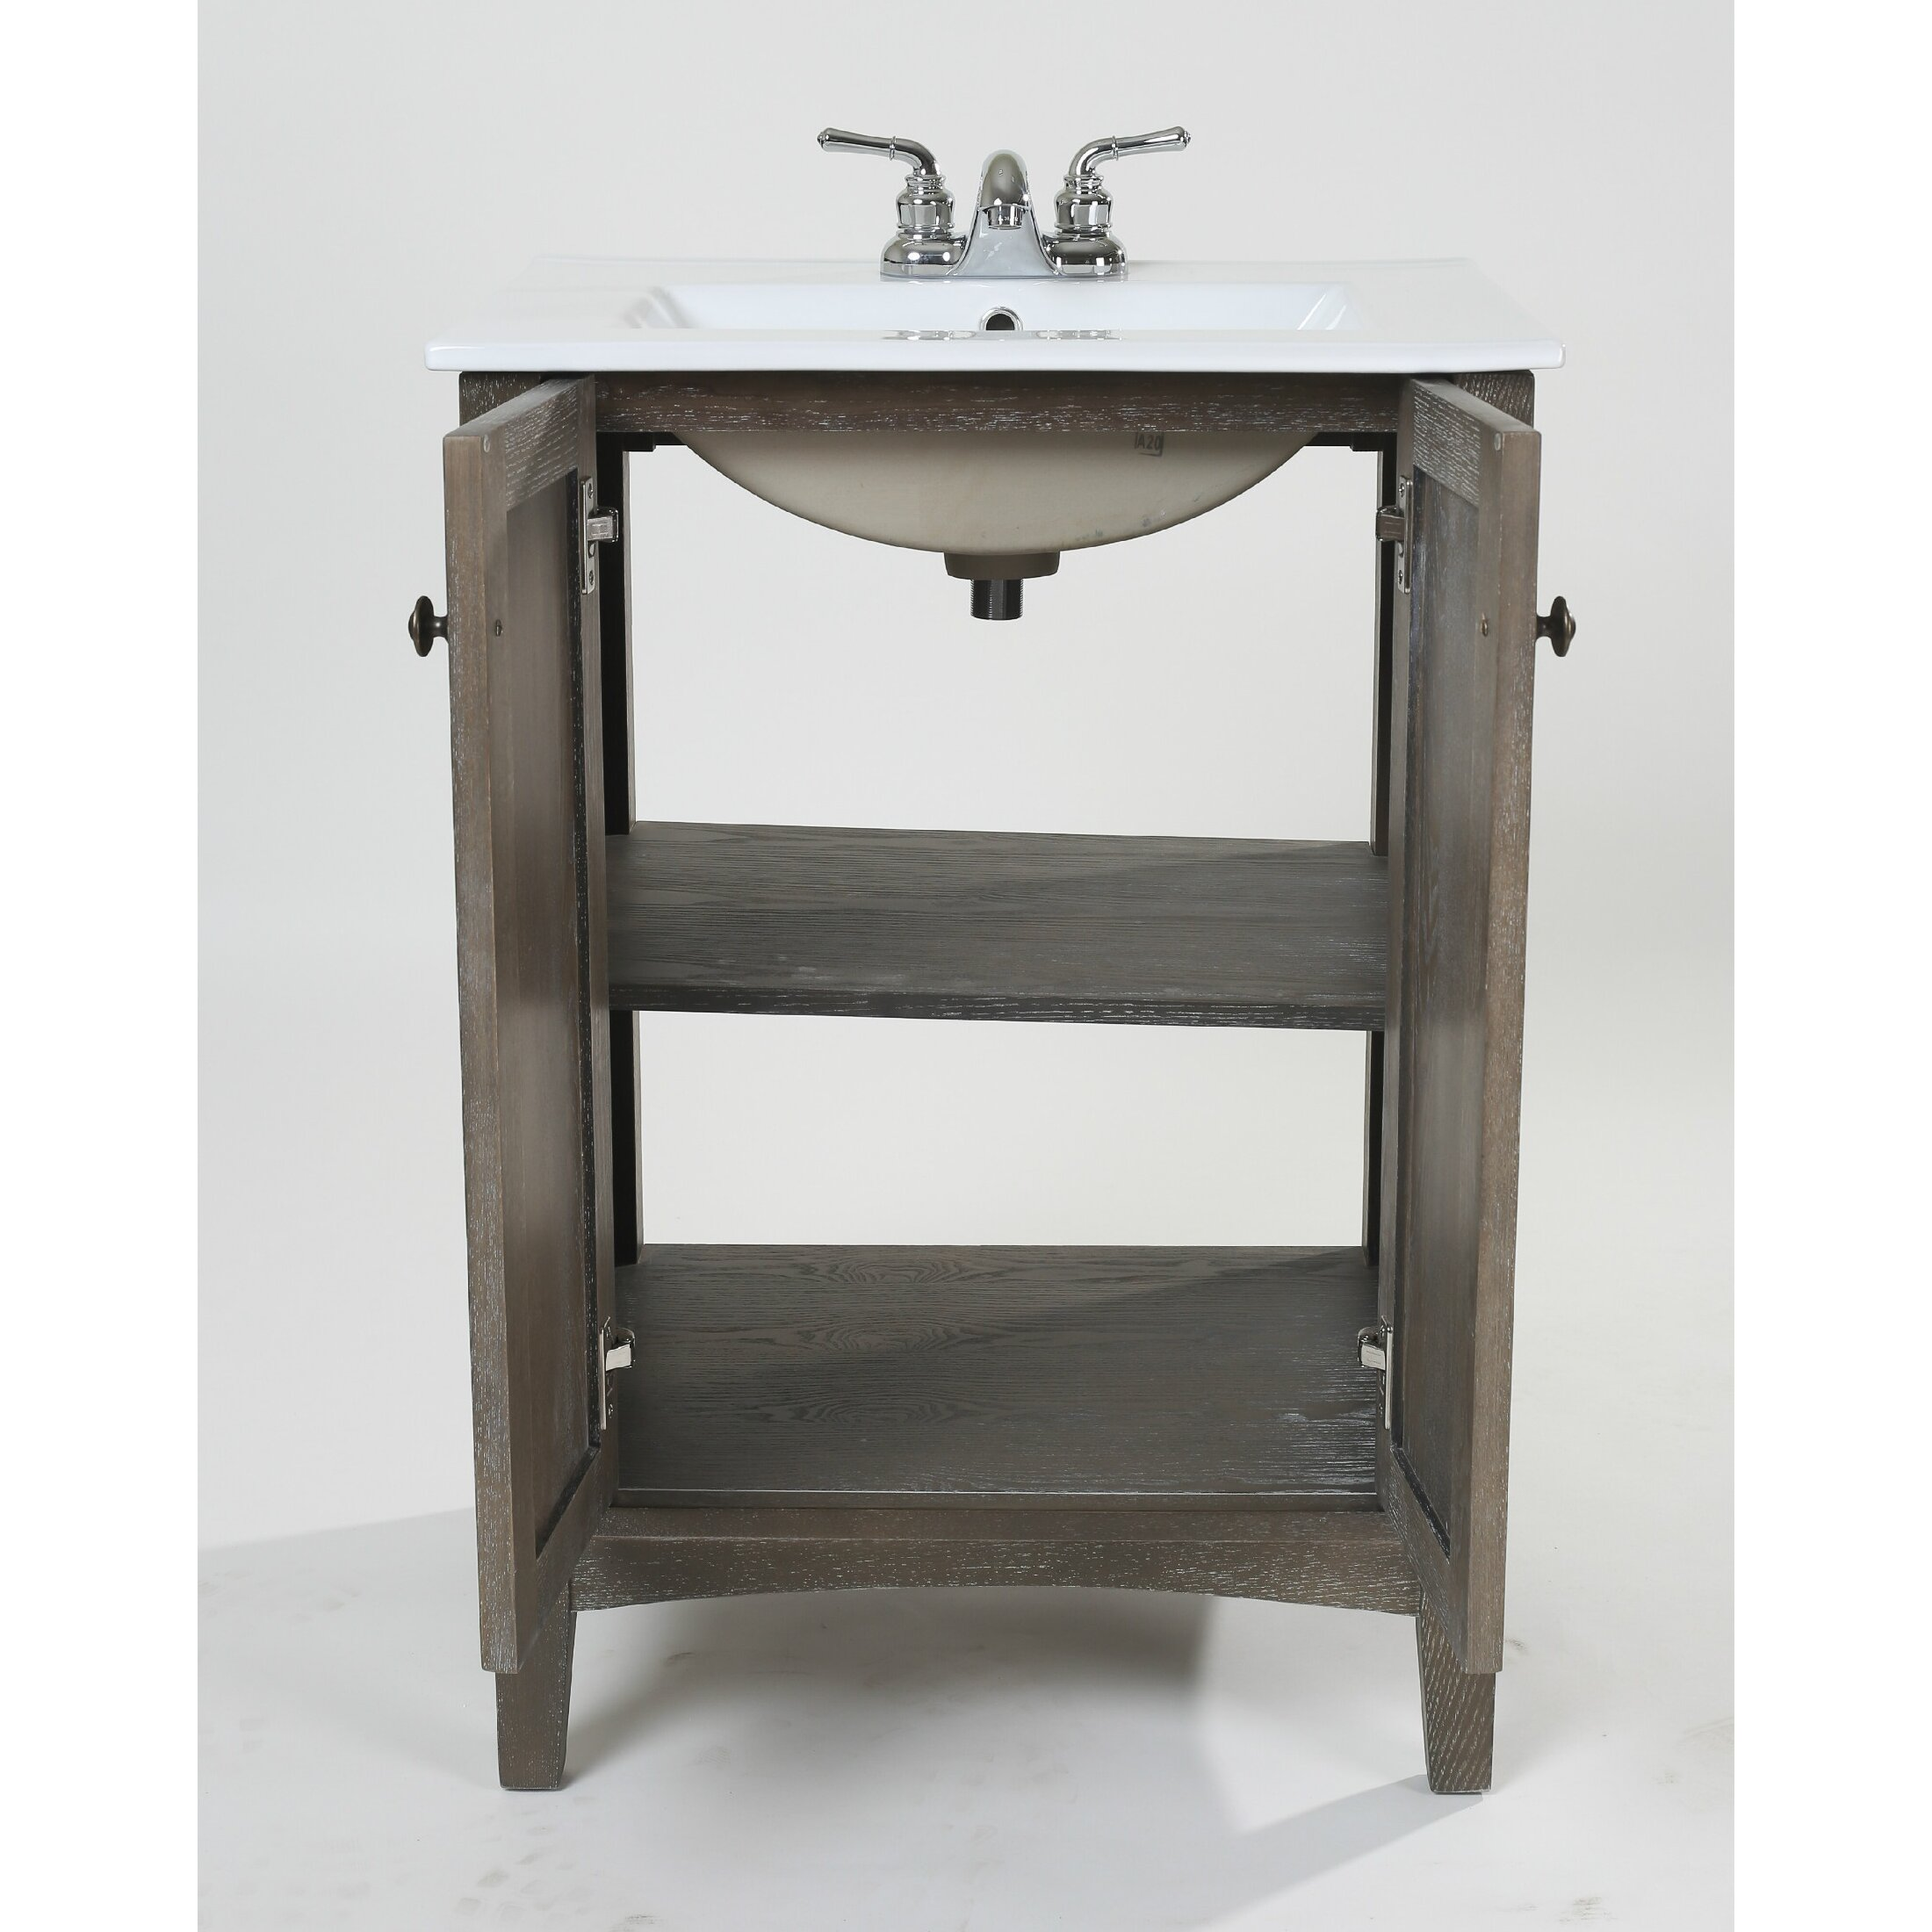 Original Tile Obsession Elegant Bathroom Vanity  COCOCOZY